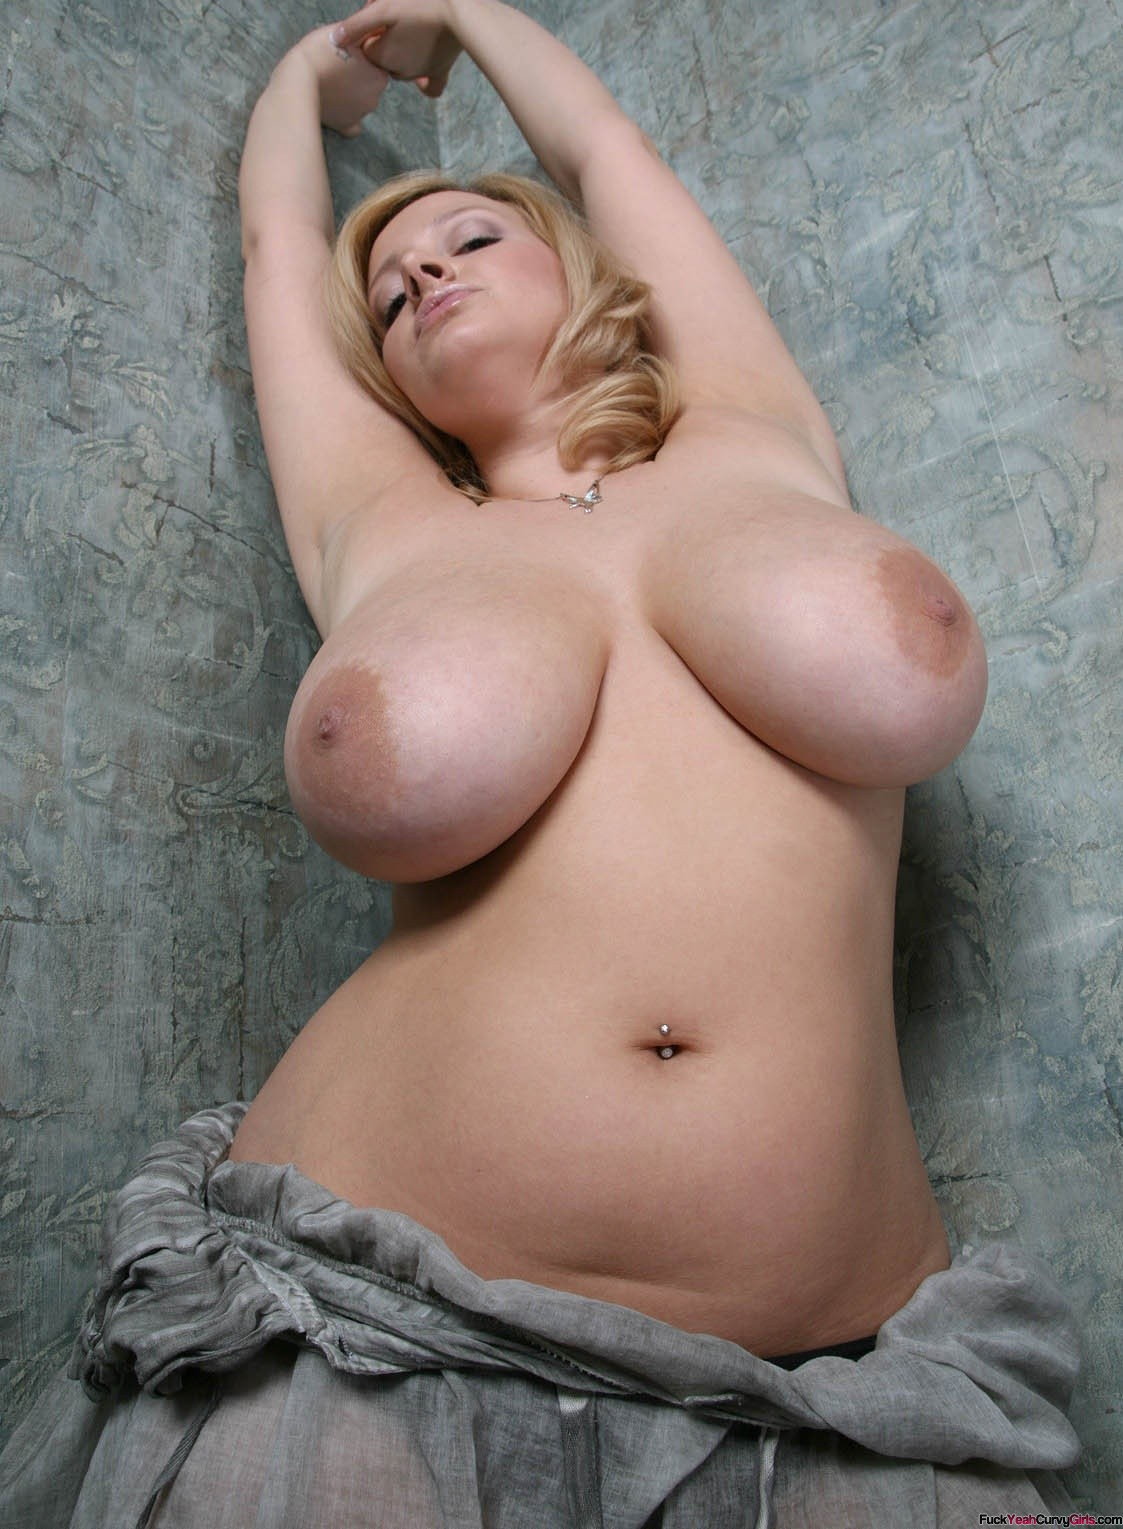 Blonde With Big Natural Boobs - Fuck Yeah Curvy Girls-9491